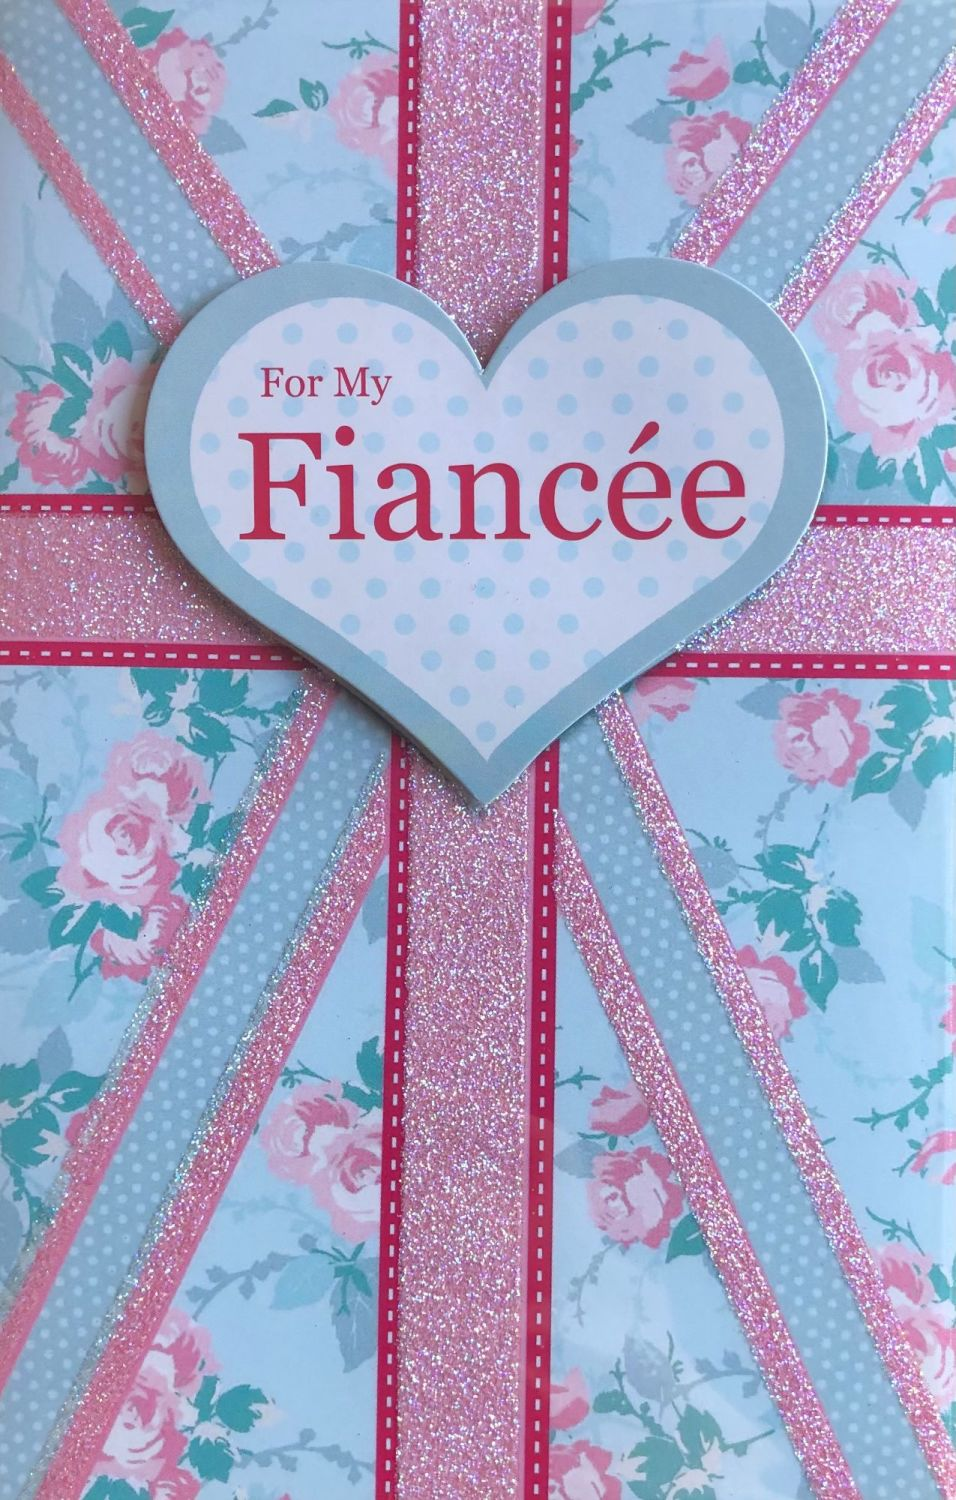 For My Fiancee